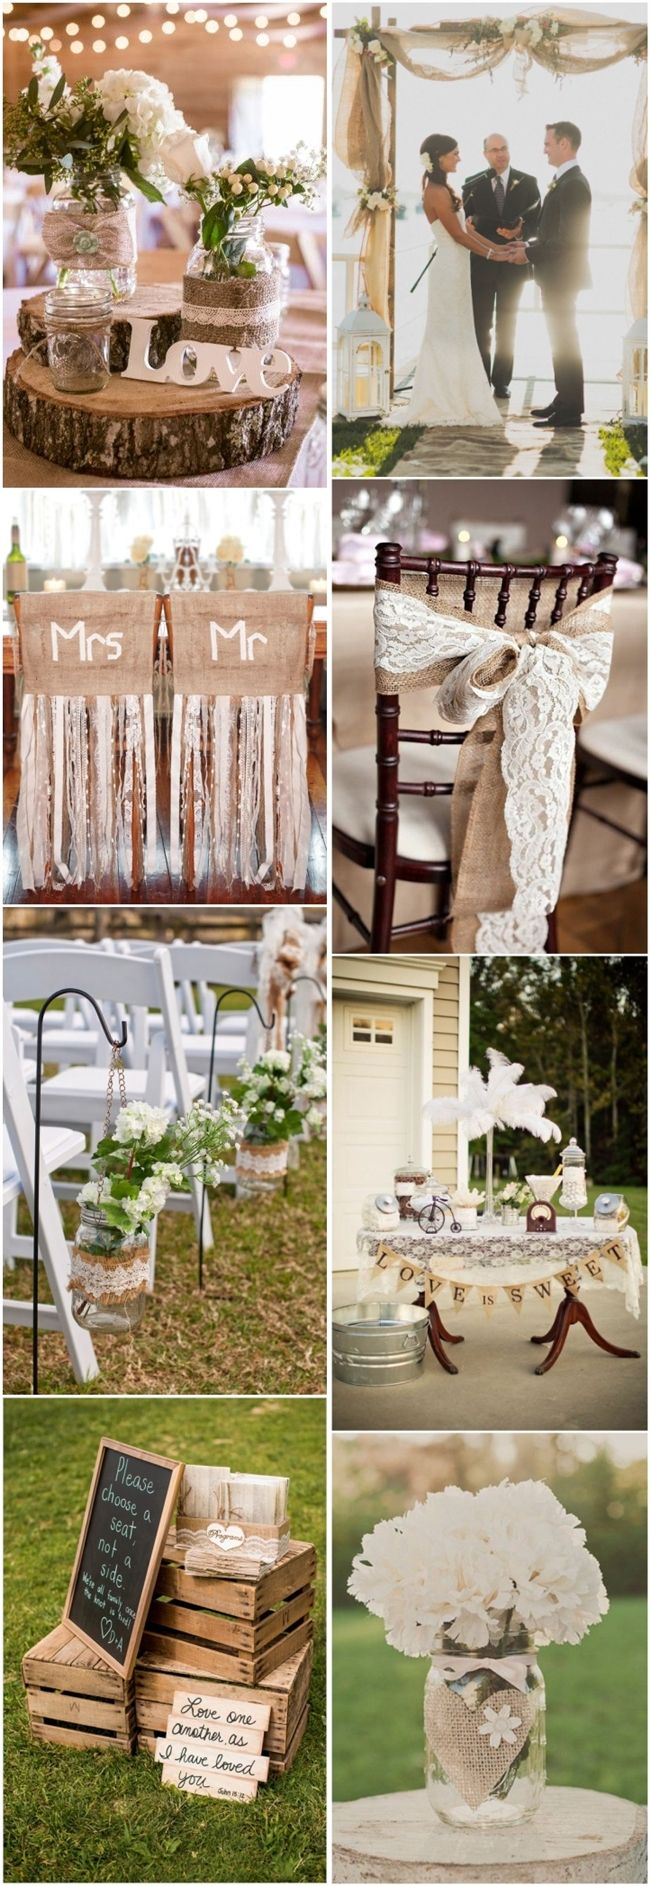 45 chic rustic burlap lace wedding ideas and inspiration for Country wedding reception decorations